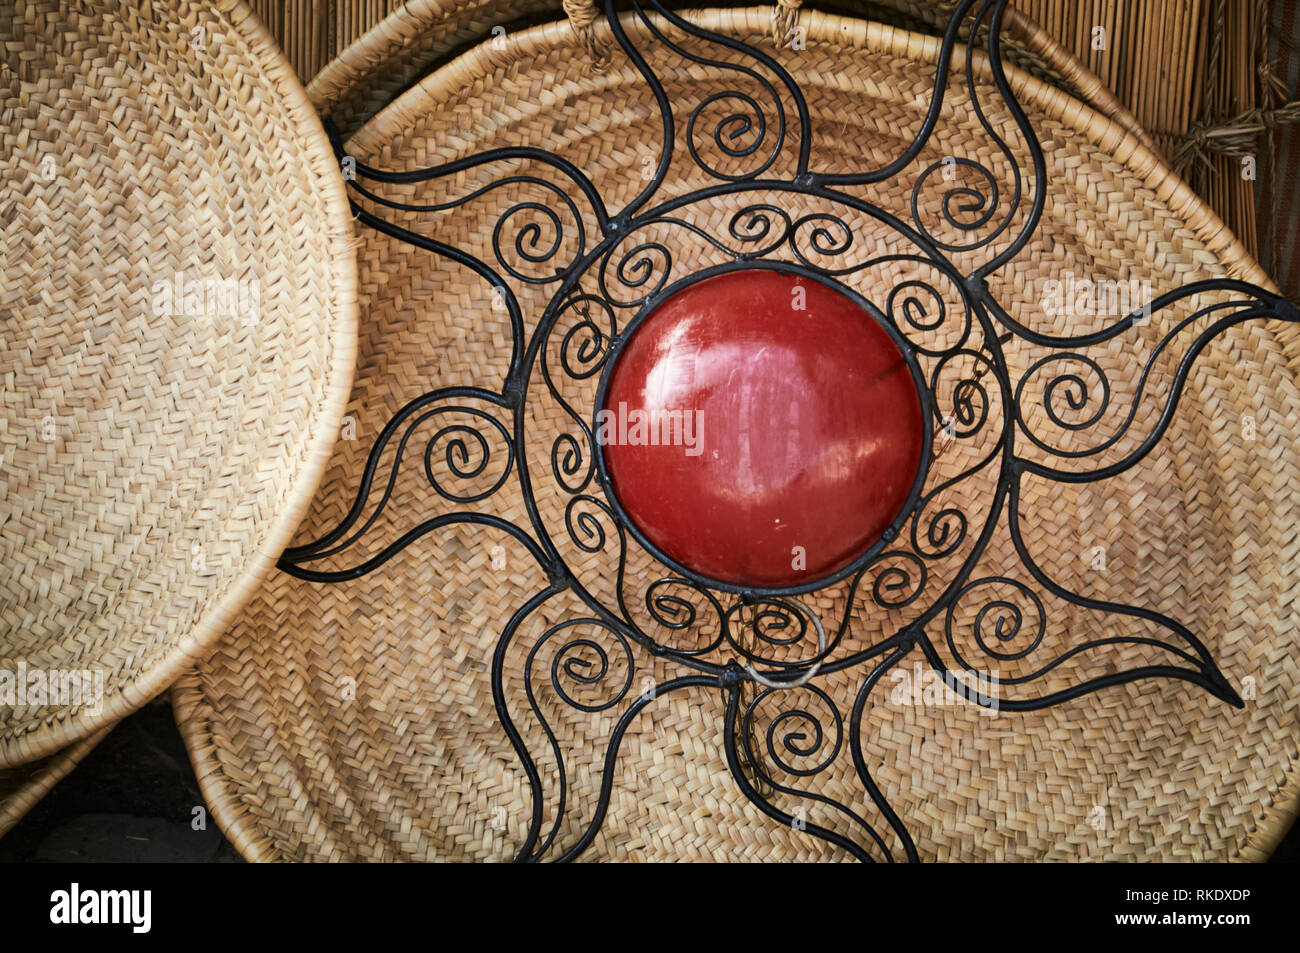 A decorative artwork, hand crafted metal welded sun with a red stone centre against wicker baskets and trays in a market in Chefchaouen, Morocco. - Stock Image